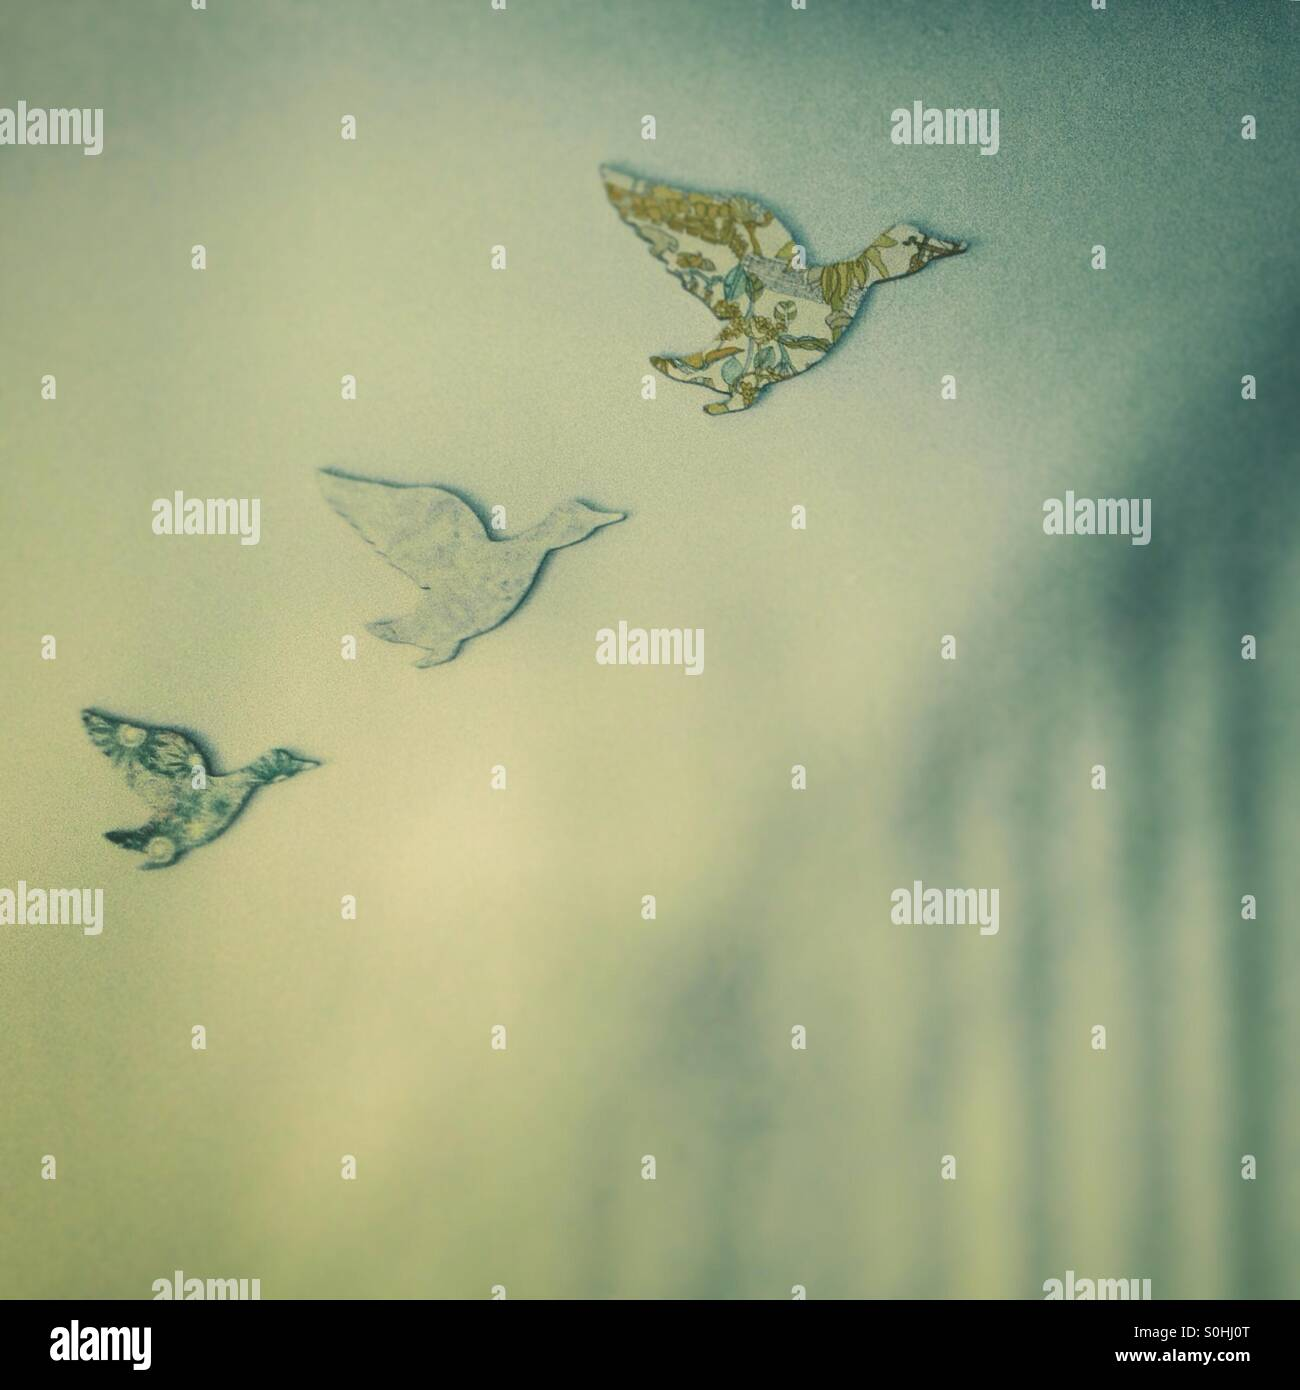 Three Flying Ducks On Wall Stock Photos & Three Flying Ducks On Wall ...